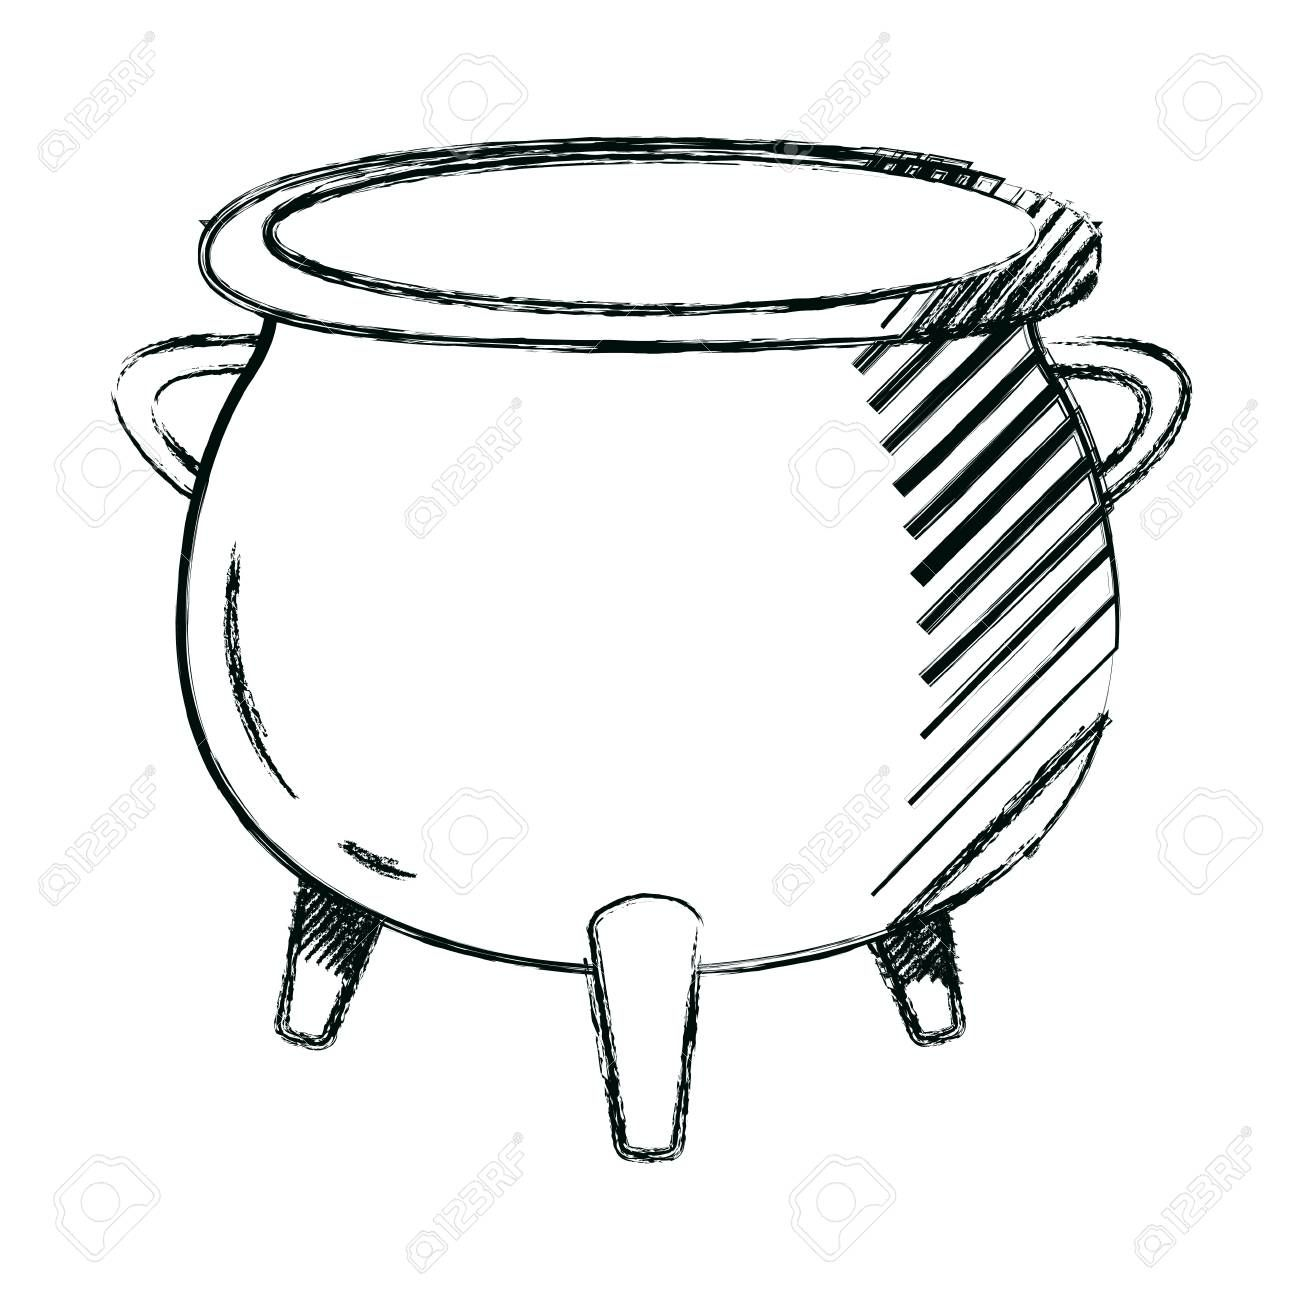 Image result for clipart pictures black and white cooking.